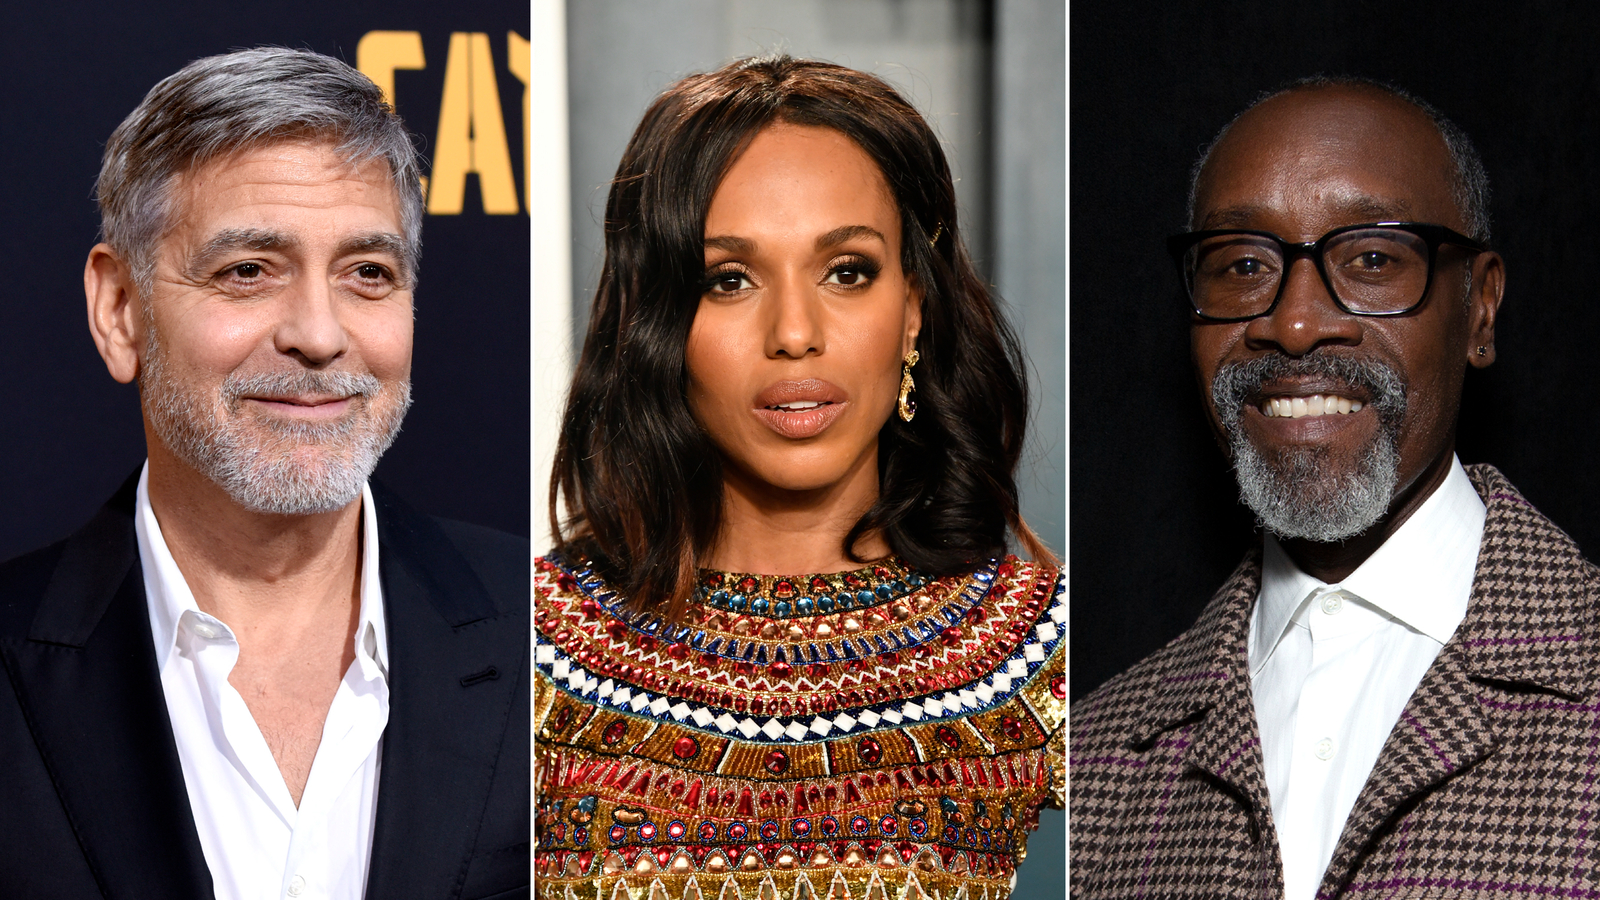 George Clooney, Kerry Washington, Don Cheadle and more back Los Angeles high school aimed at making Hollywood more inclusive